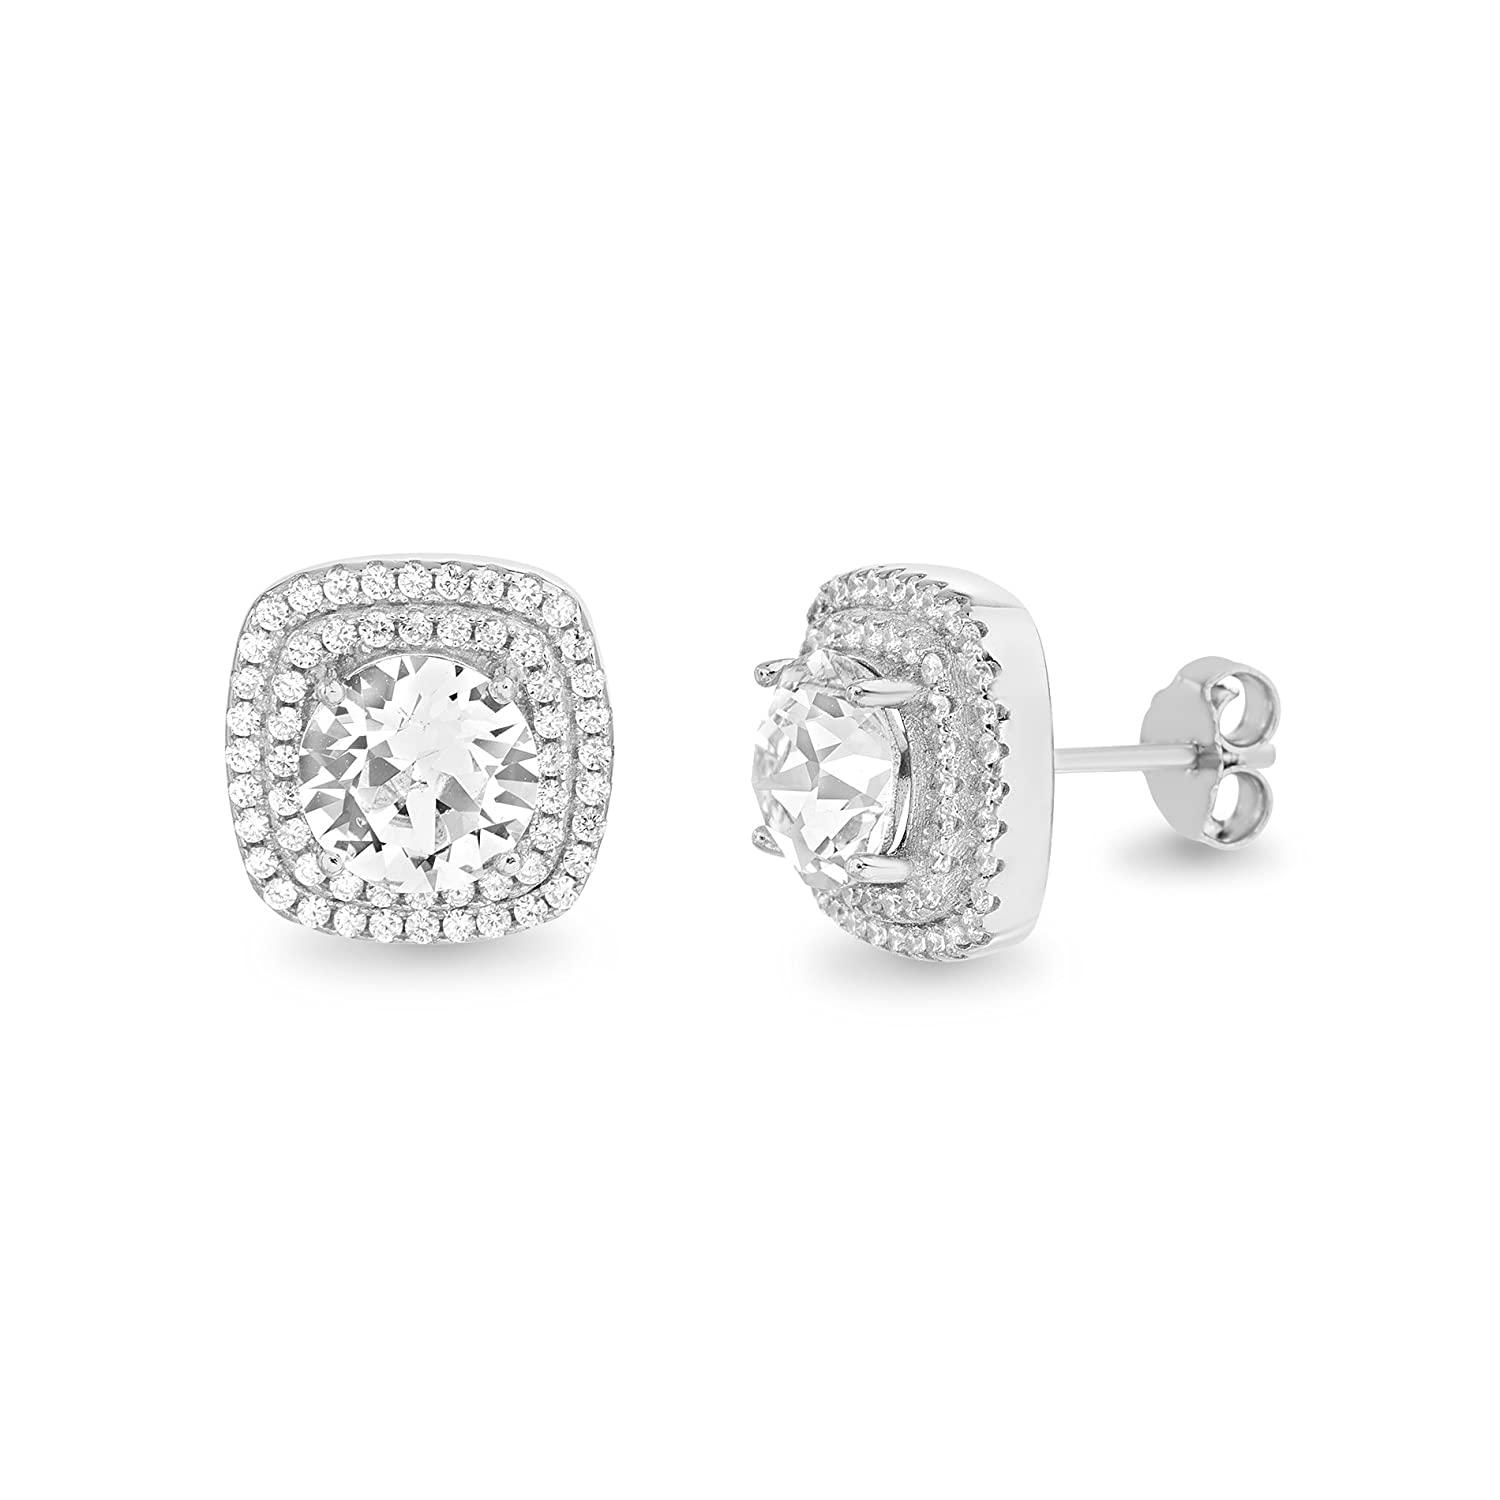 da3d3743a Amazon.com: Devin Rose Round Square Double Halo Stud Earrings for Women  Made With Swarovski Crystal in 925 Sterling Silver: Jewelry